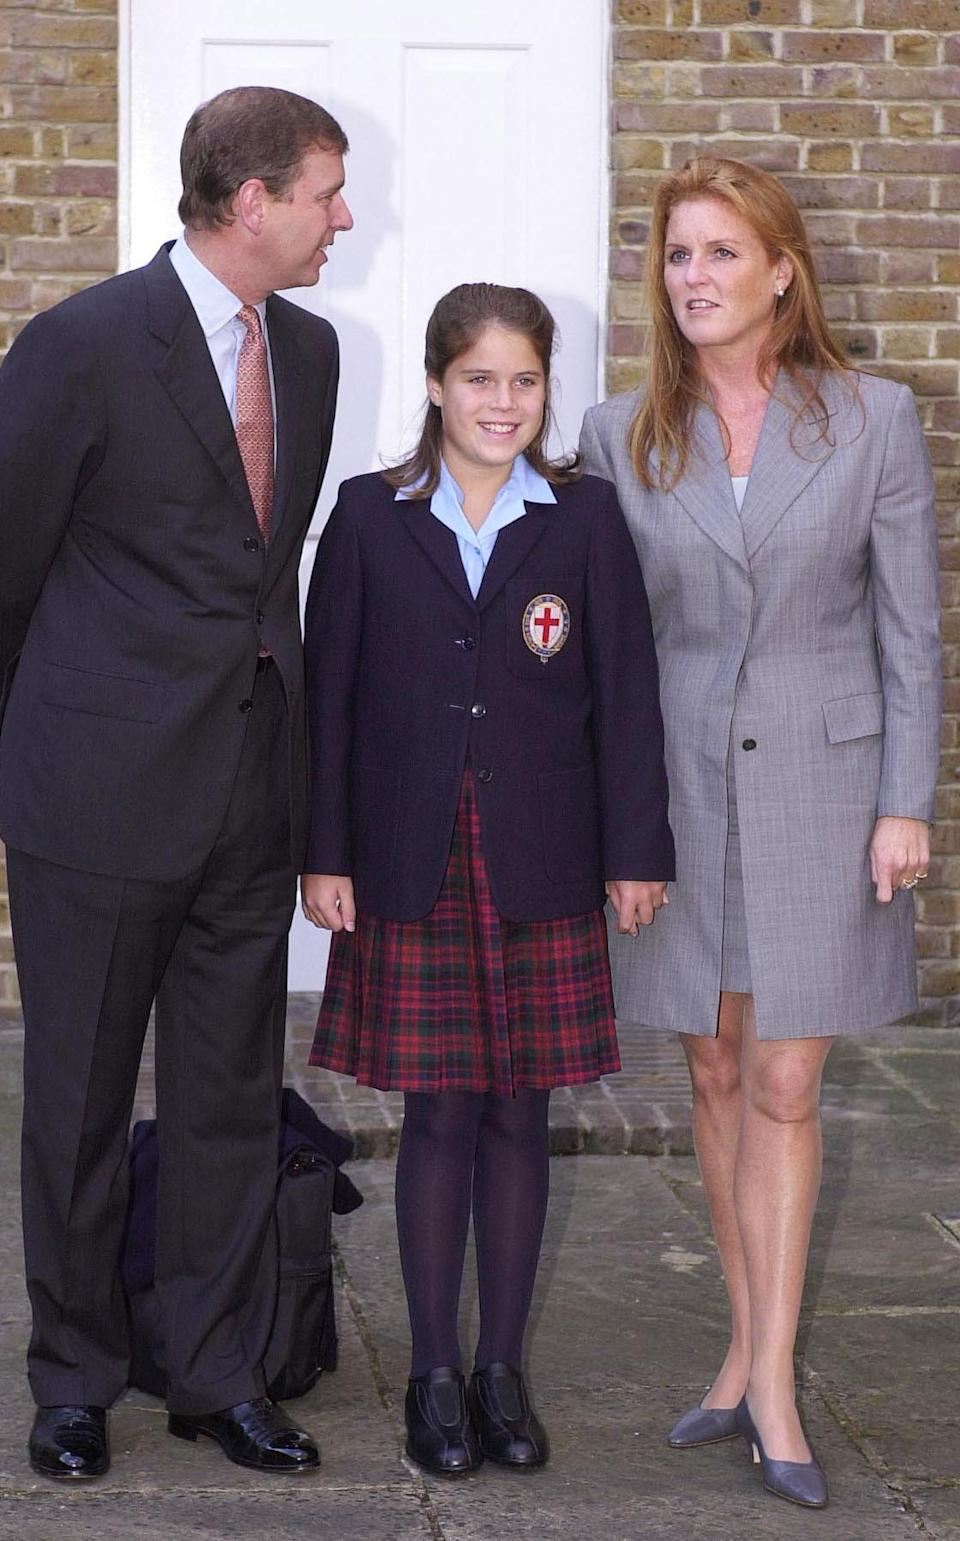 The Queen's grandaughter was accompanied by her parents, Prince Andrew and Sarah Ferguson, on her first day at secondary school. <em>[Photo: PA]</em>